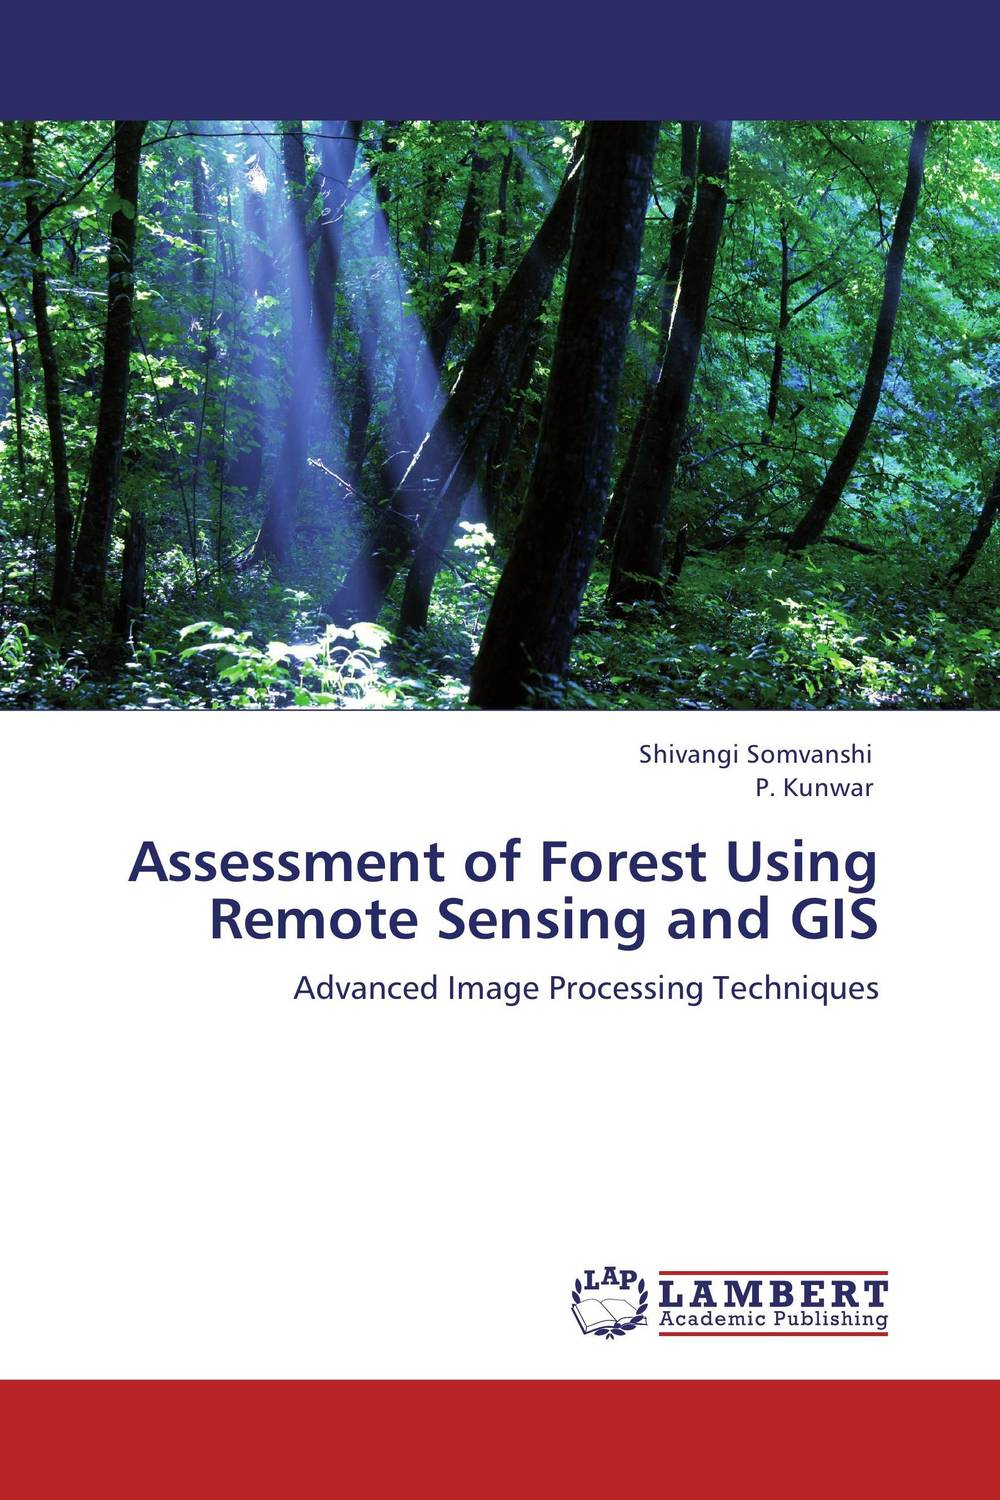 Assessment of Forest Using Remote Sensing and GIS remote sensing inversion problems and natural hazards asradvances in space research volume 21 3